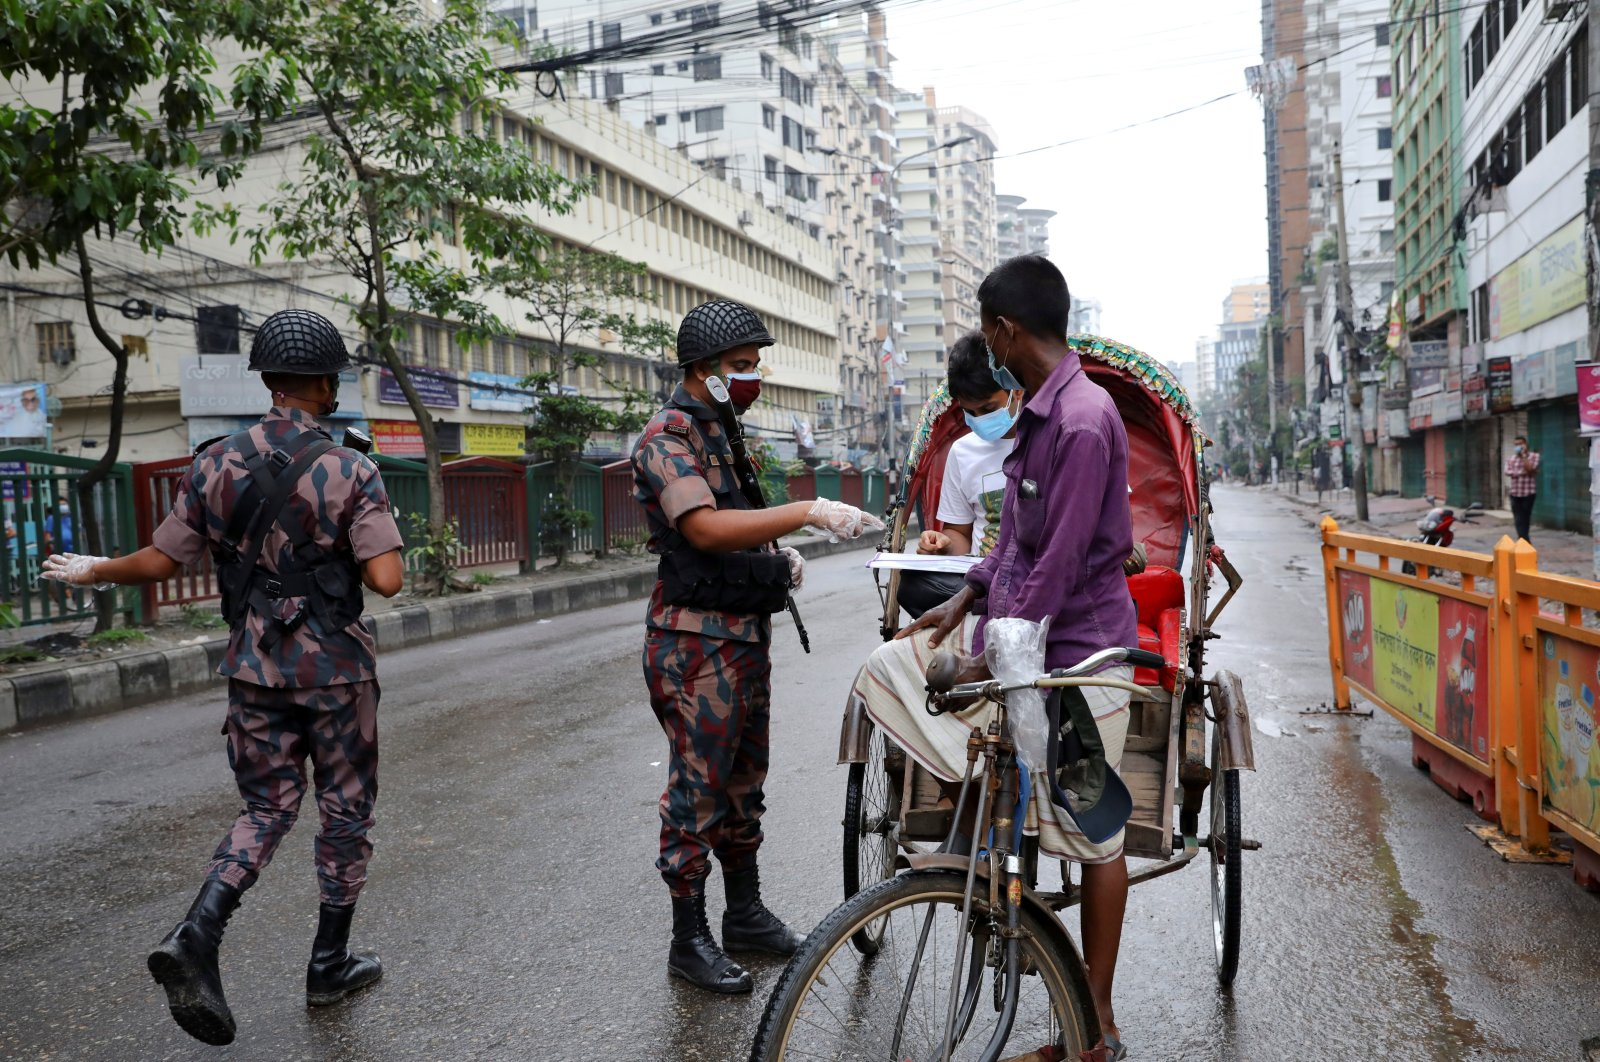 Members of Border Guard Bangladesh (BGB) check commuters at a checkpoint during a countrywide lockdown in Dhaka, Bangladesh, July 1, 2021. (Reuters Photo)